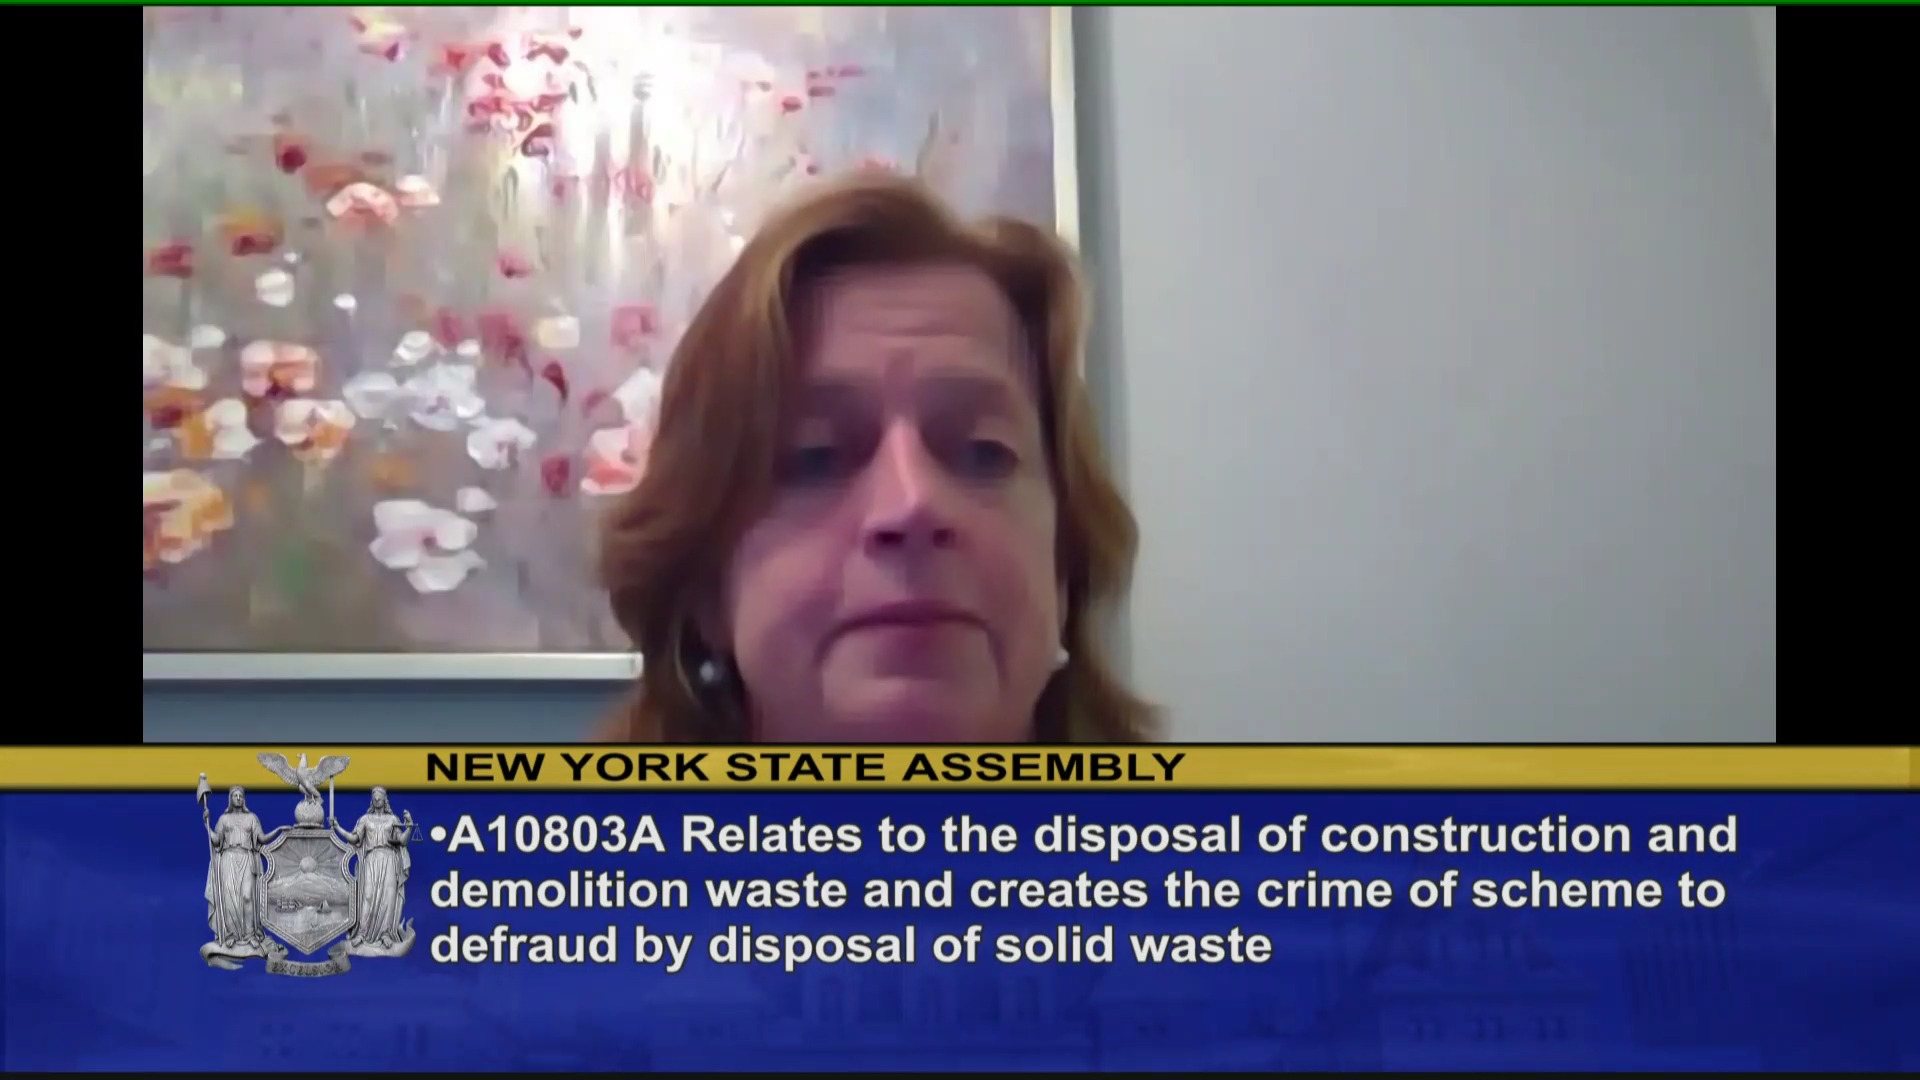 Imposing Stiffer Penalties for Illegal Disposal of Waste